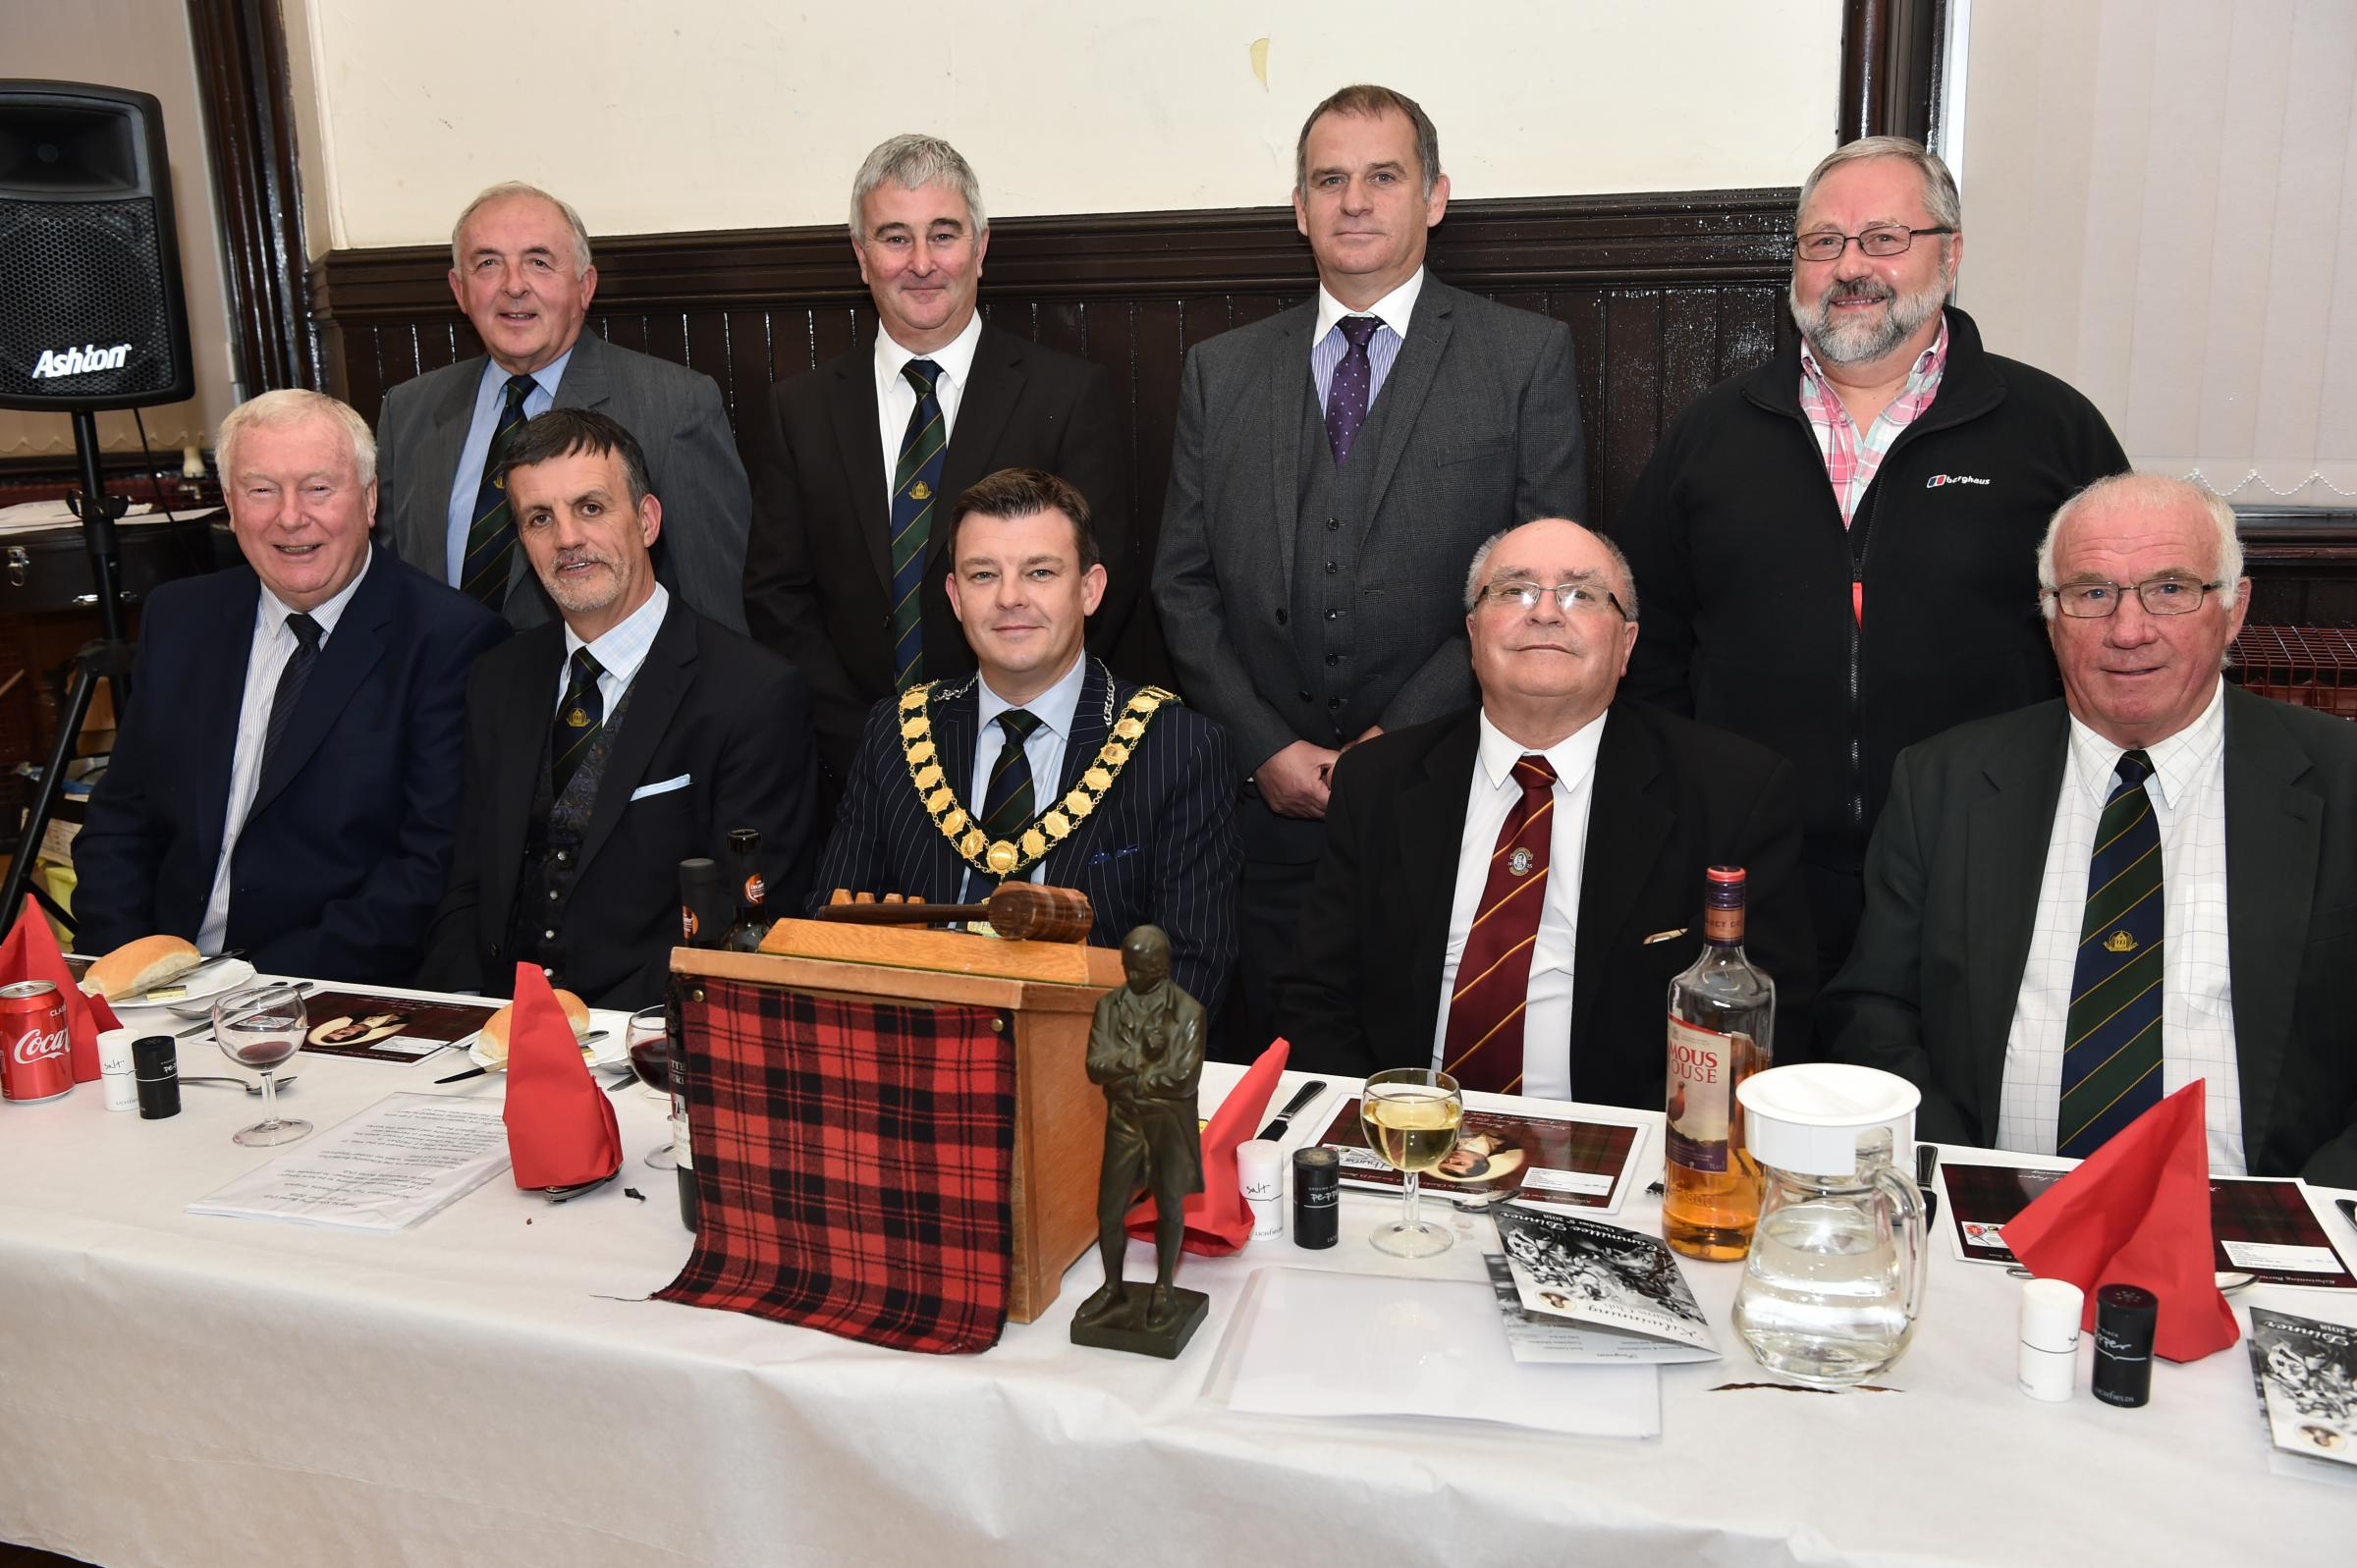 Kilwinning Burns Club kick off new season